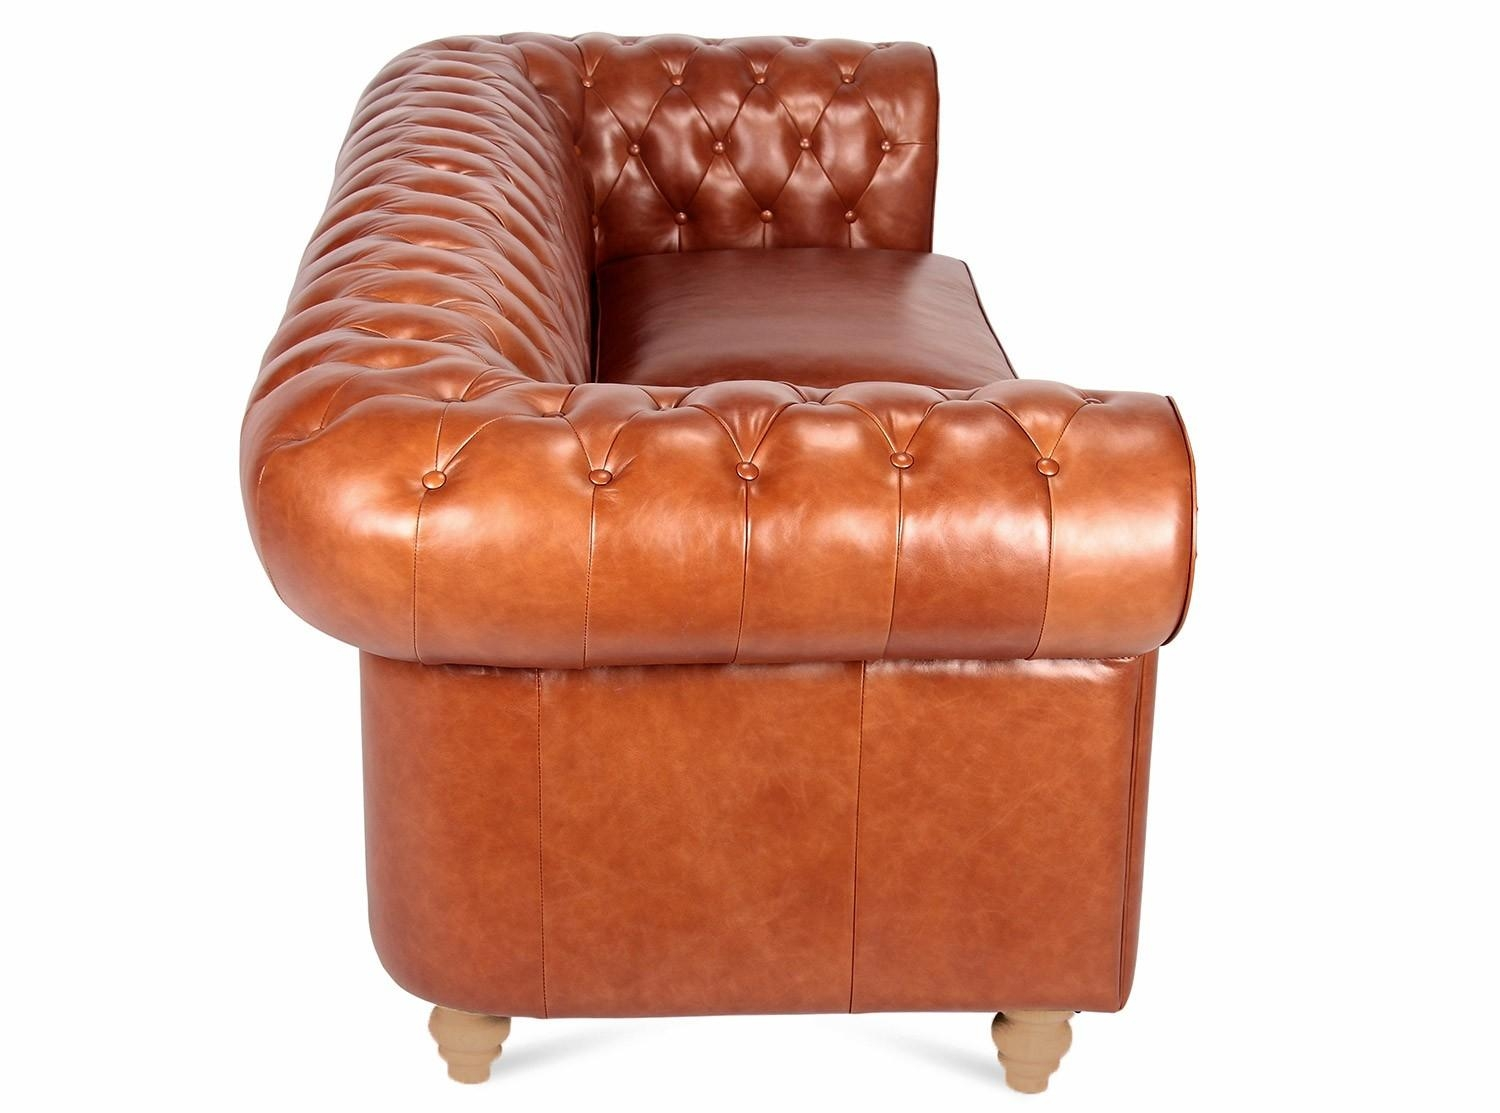 Chesterfield Sofa 3 Seater Pertaining To Aniline Leather Sofas (Image 11 of 20)